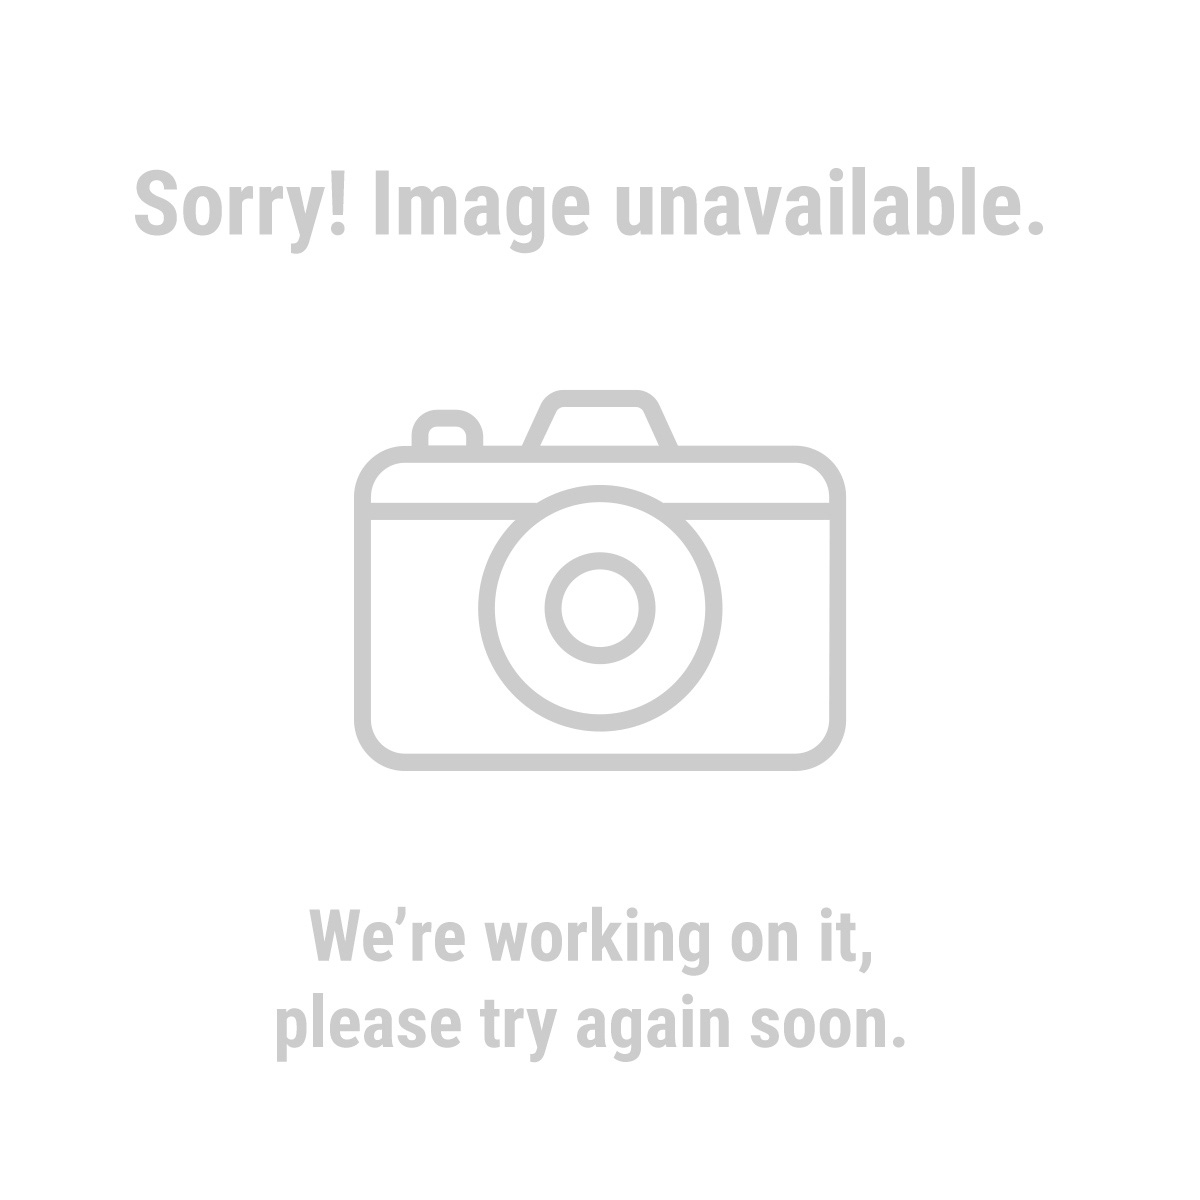 Haul-Master® 62671 1720 lb. Capacity 48 in. x 96 in. Super Duty Trailer